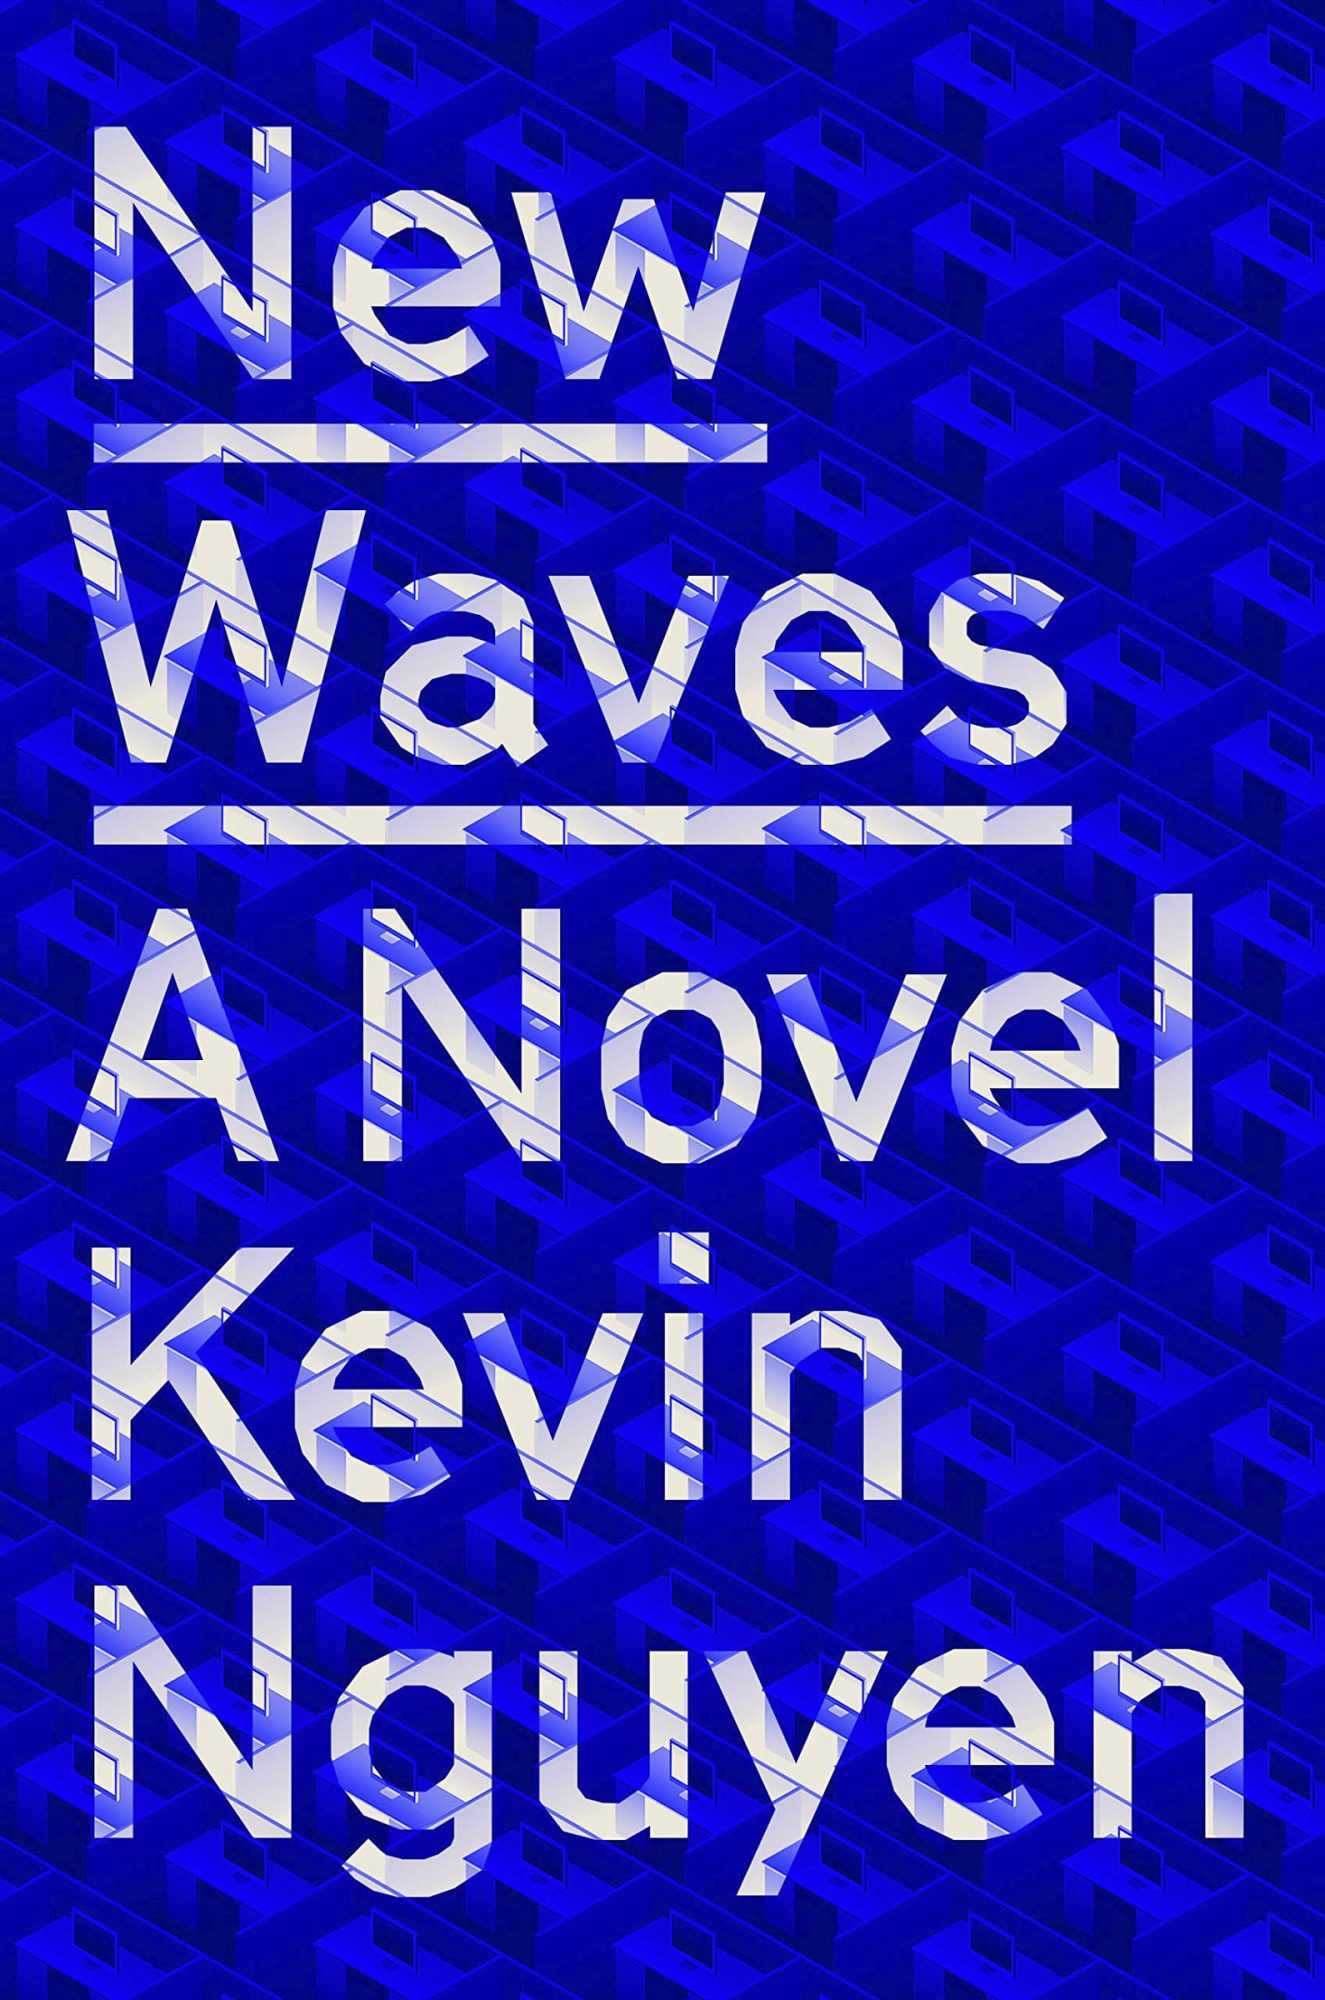 New Waves by Kevin Nguyen CR: One World